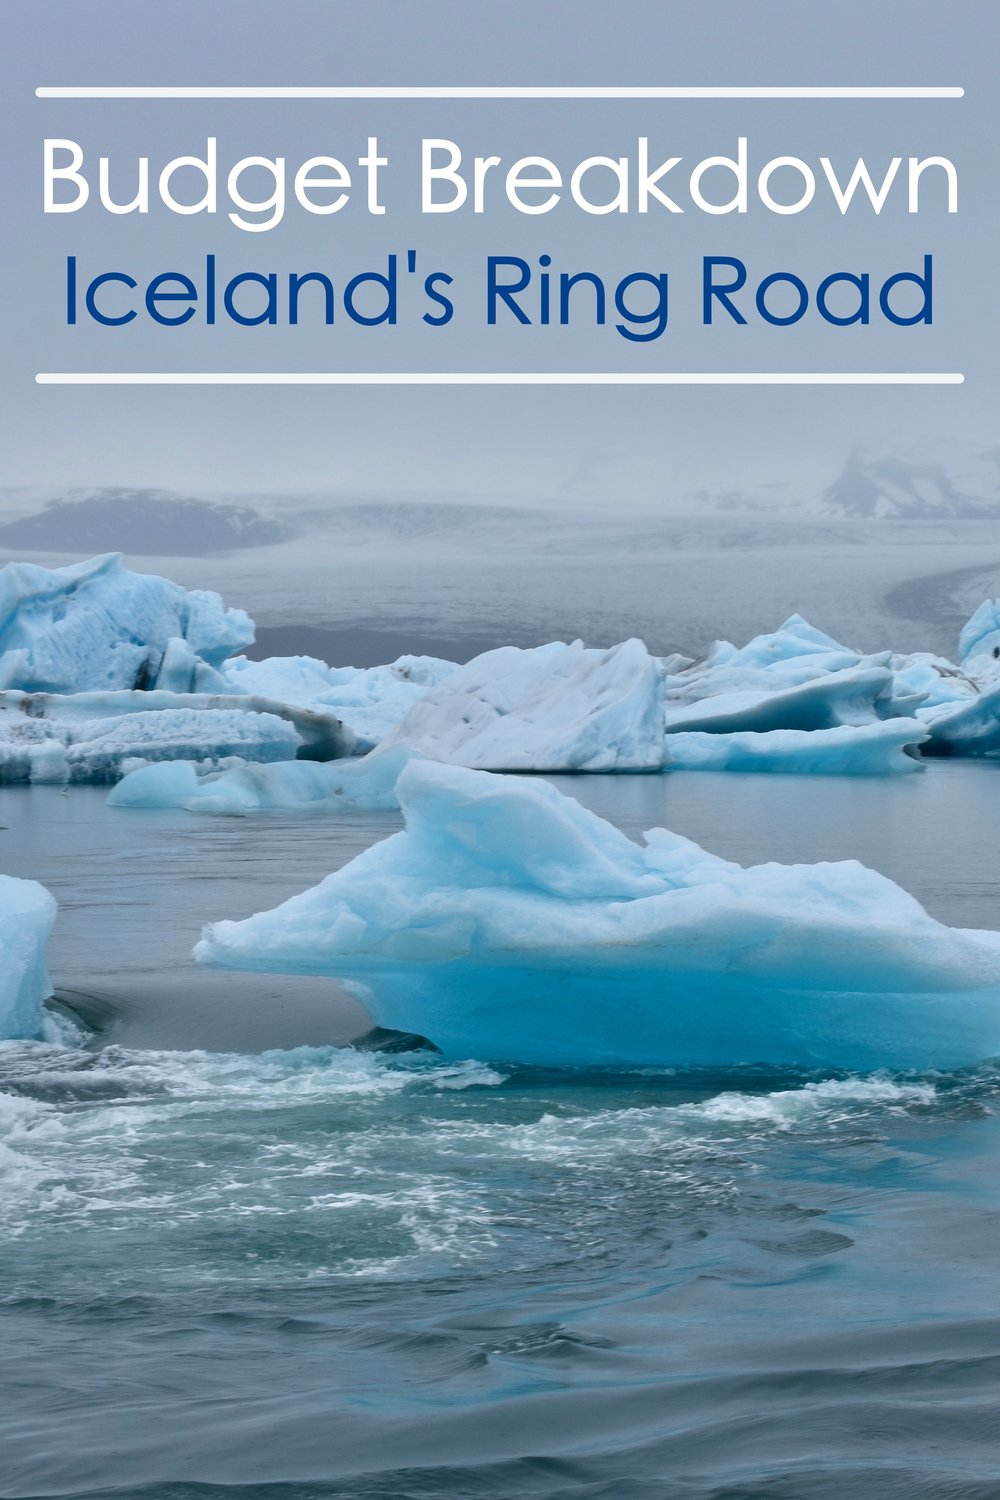 How Much Does it Cost to Go to Iceland? - Budget Breakdown of Traveling the Ring Road and Spending 11 Days in Iceland #iceland #travel #budget #cost #ringroad